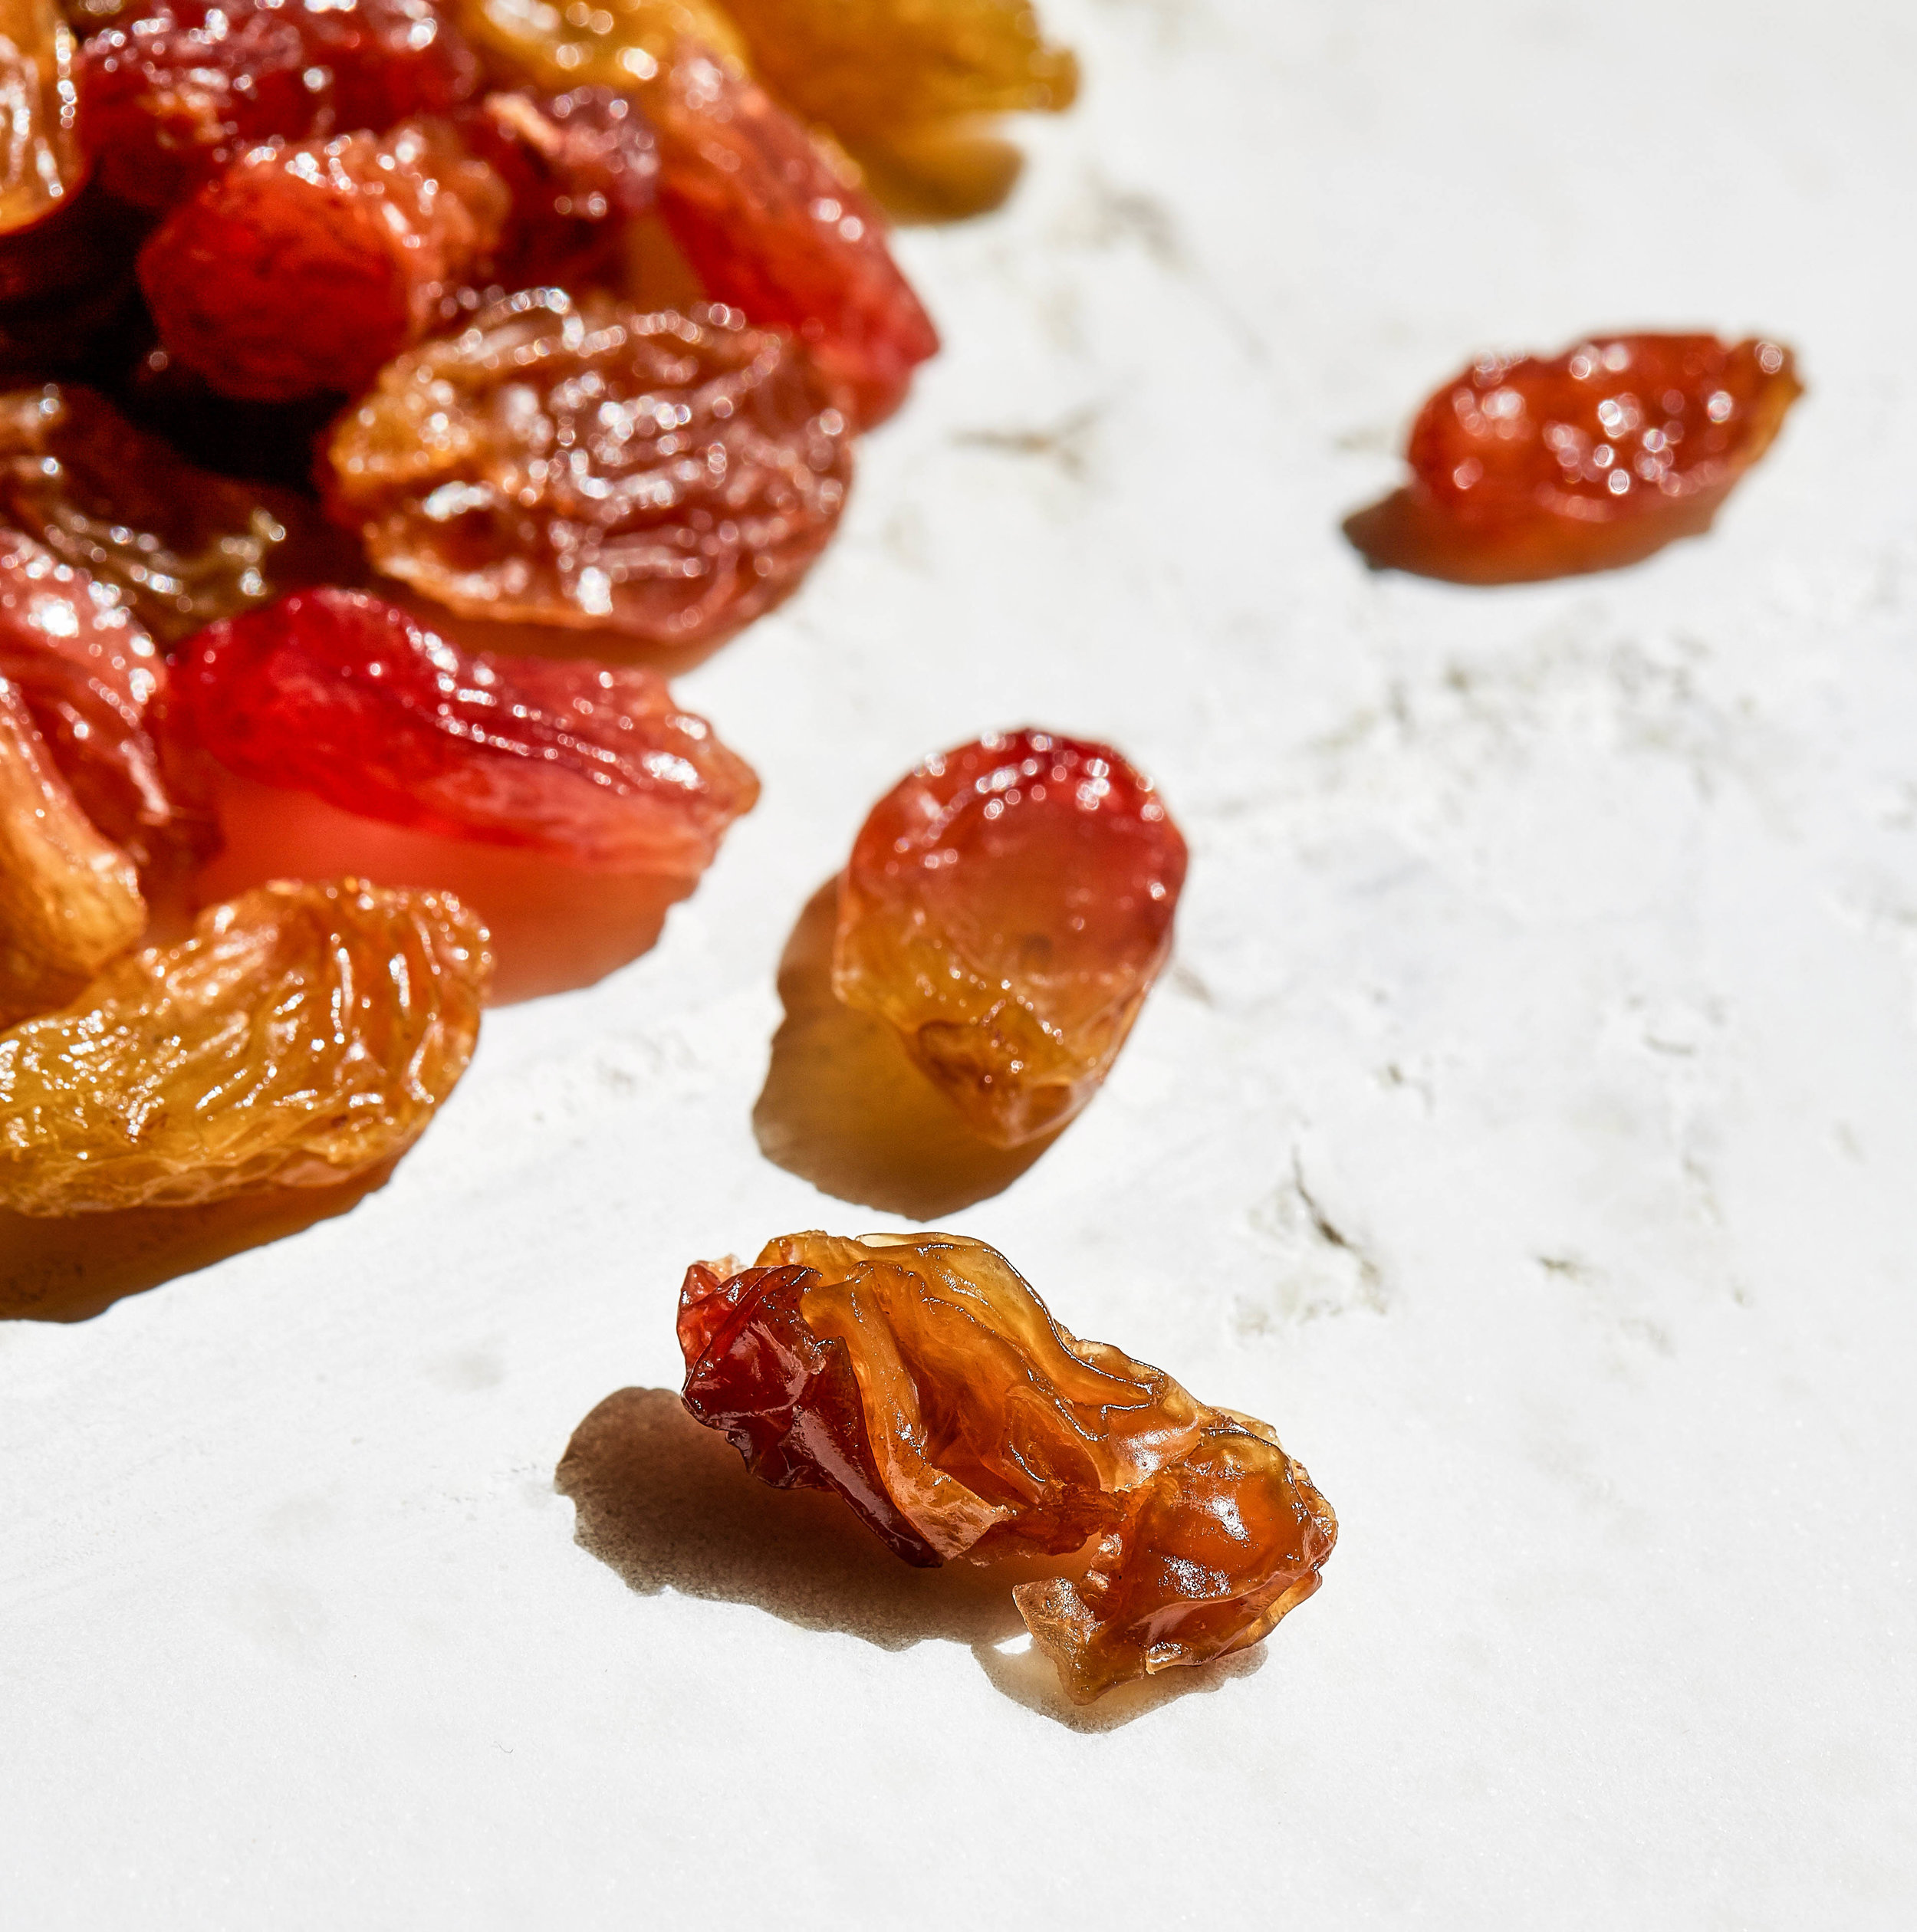 figs-raisins- 7-ed-sm.jpg